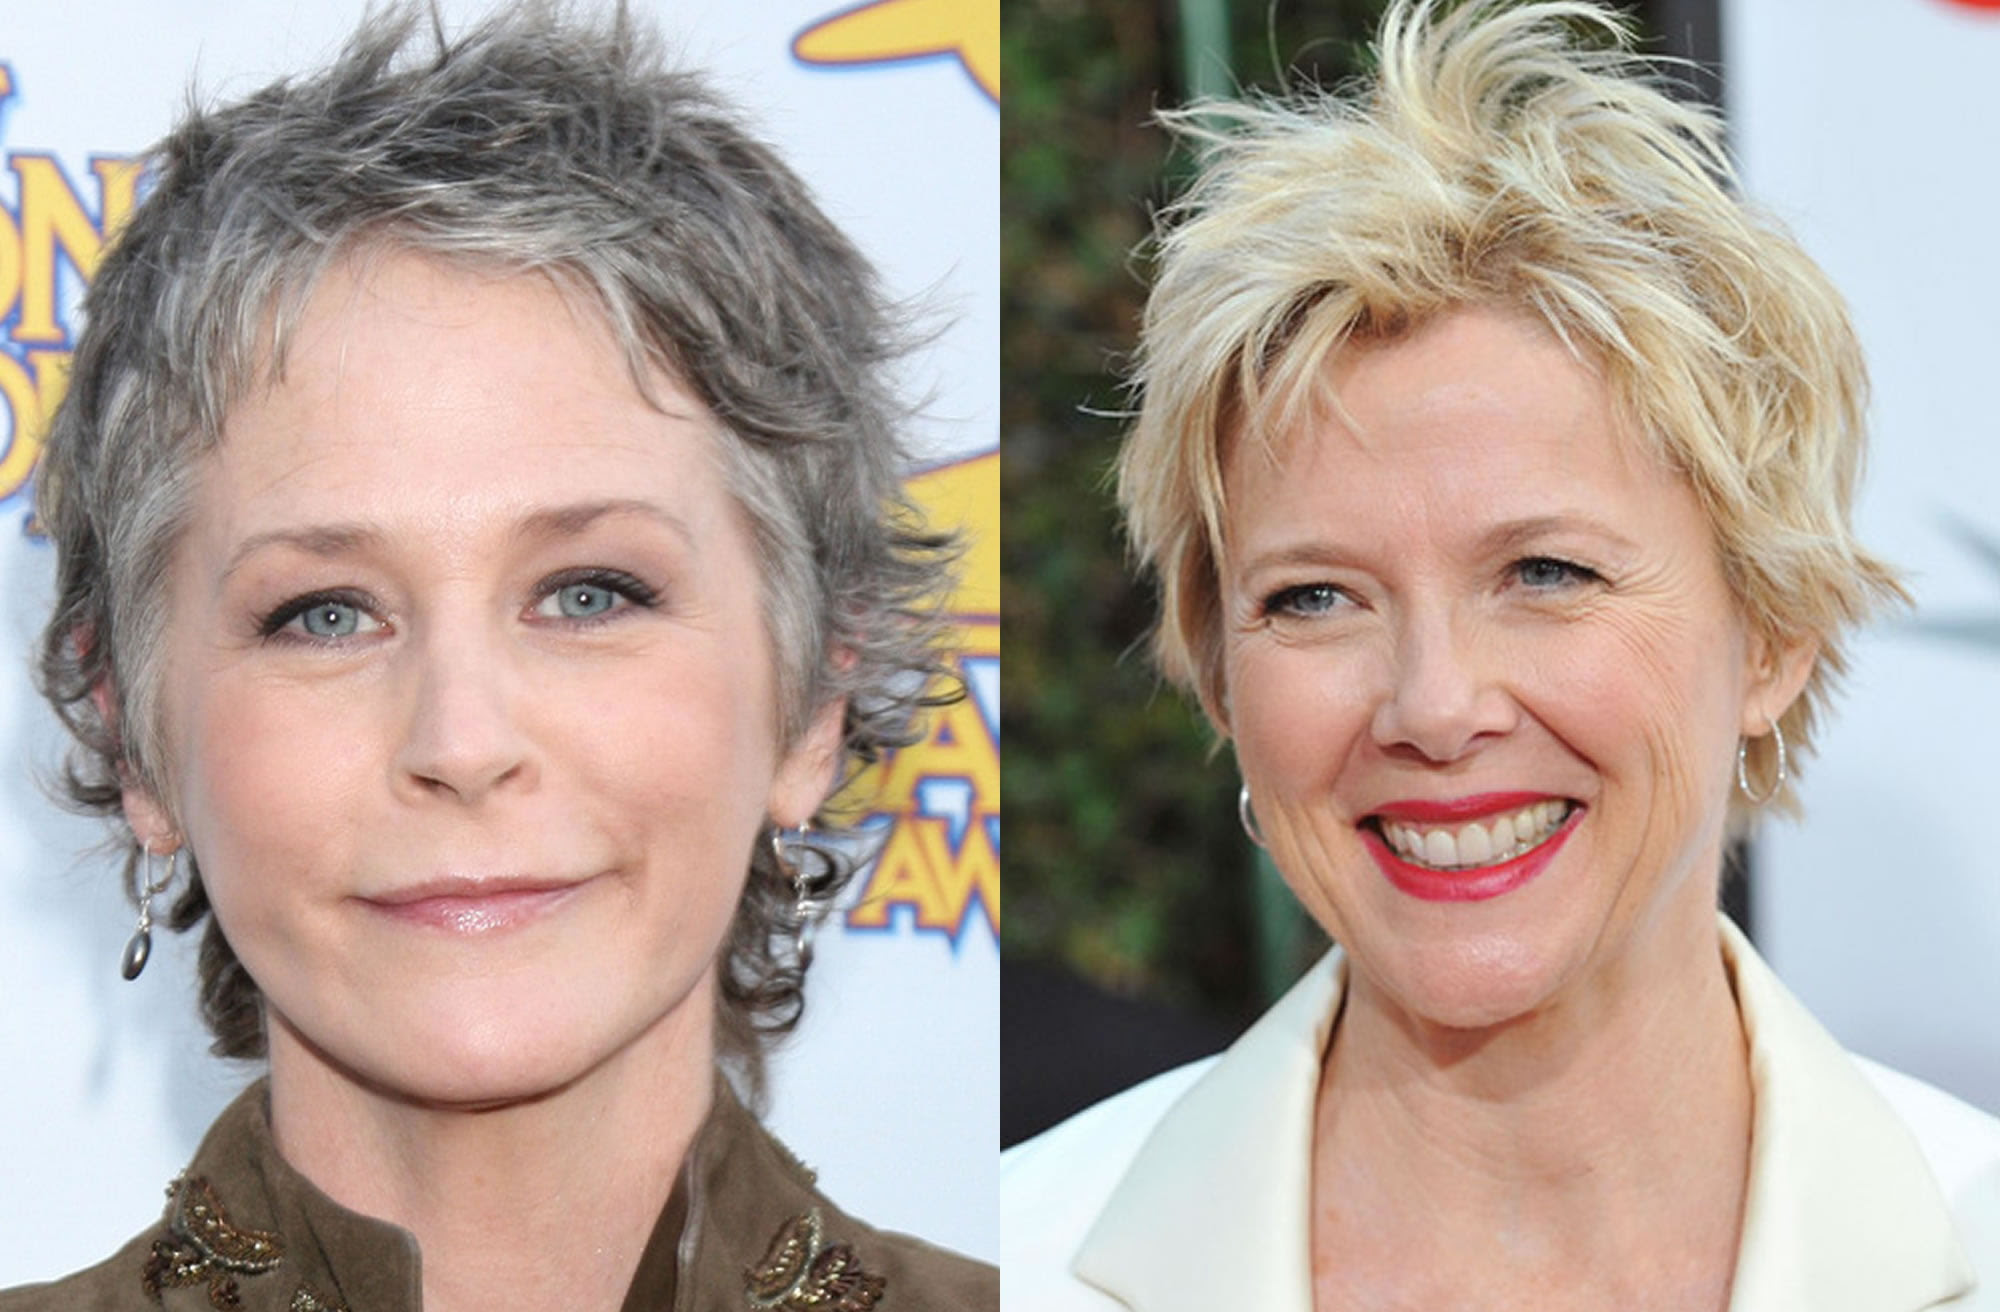 Short Pixie Haircut and Hairstyles for Older Women for 2020-2021 - Page 4 of 6